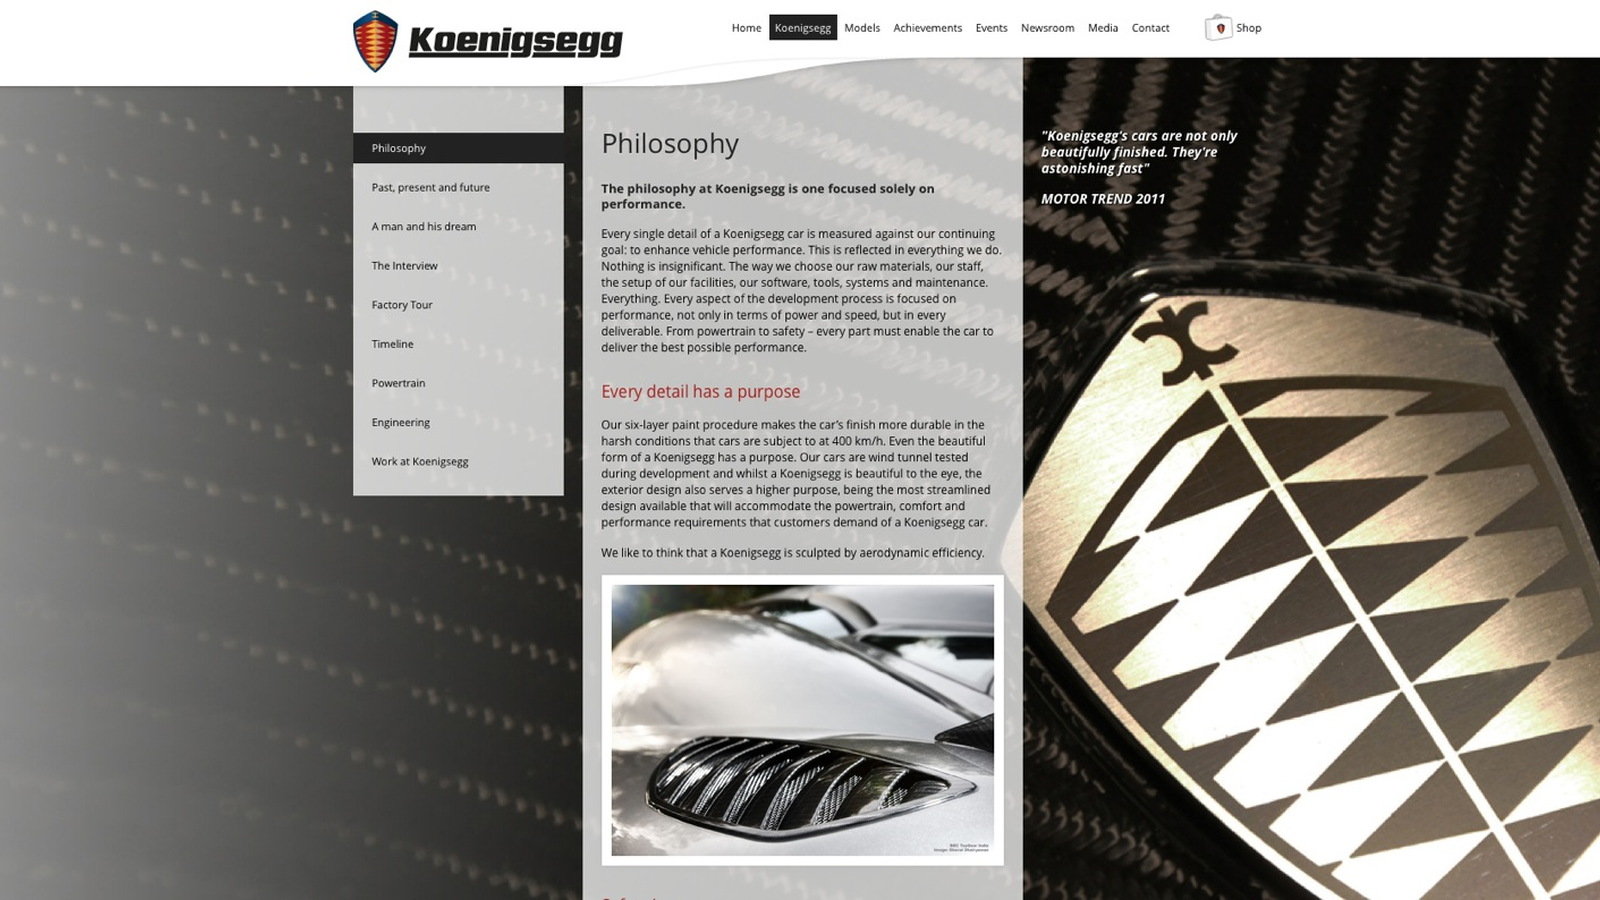 Koenigsegg's latest website update